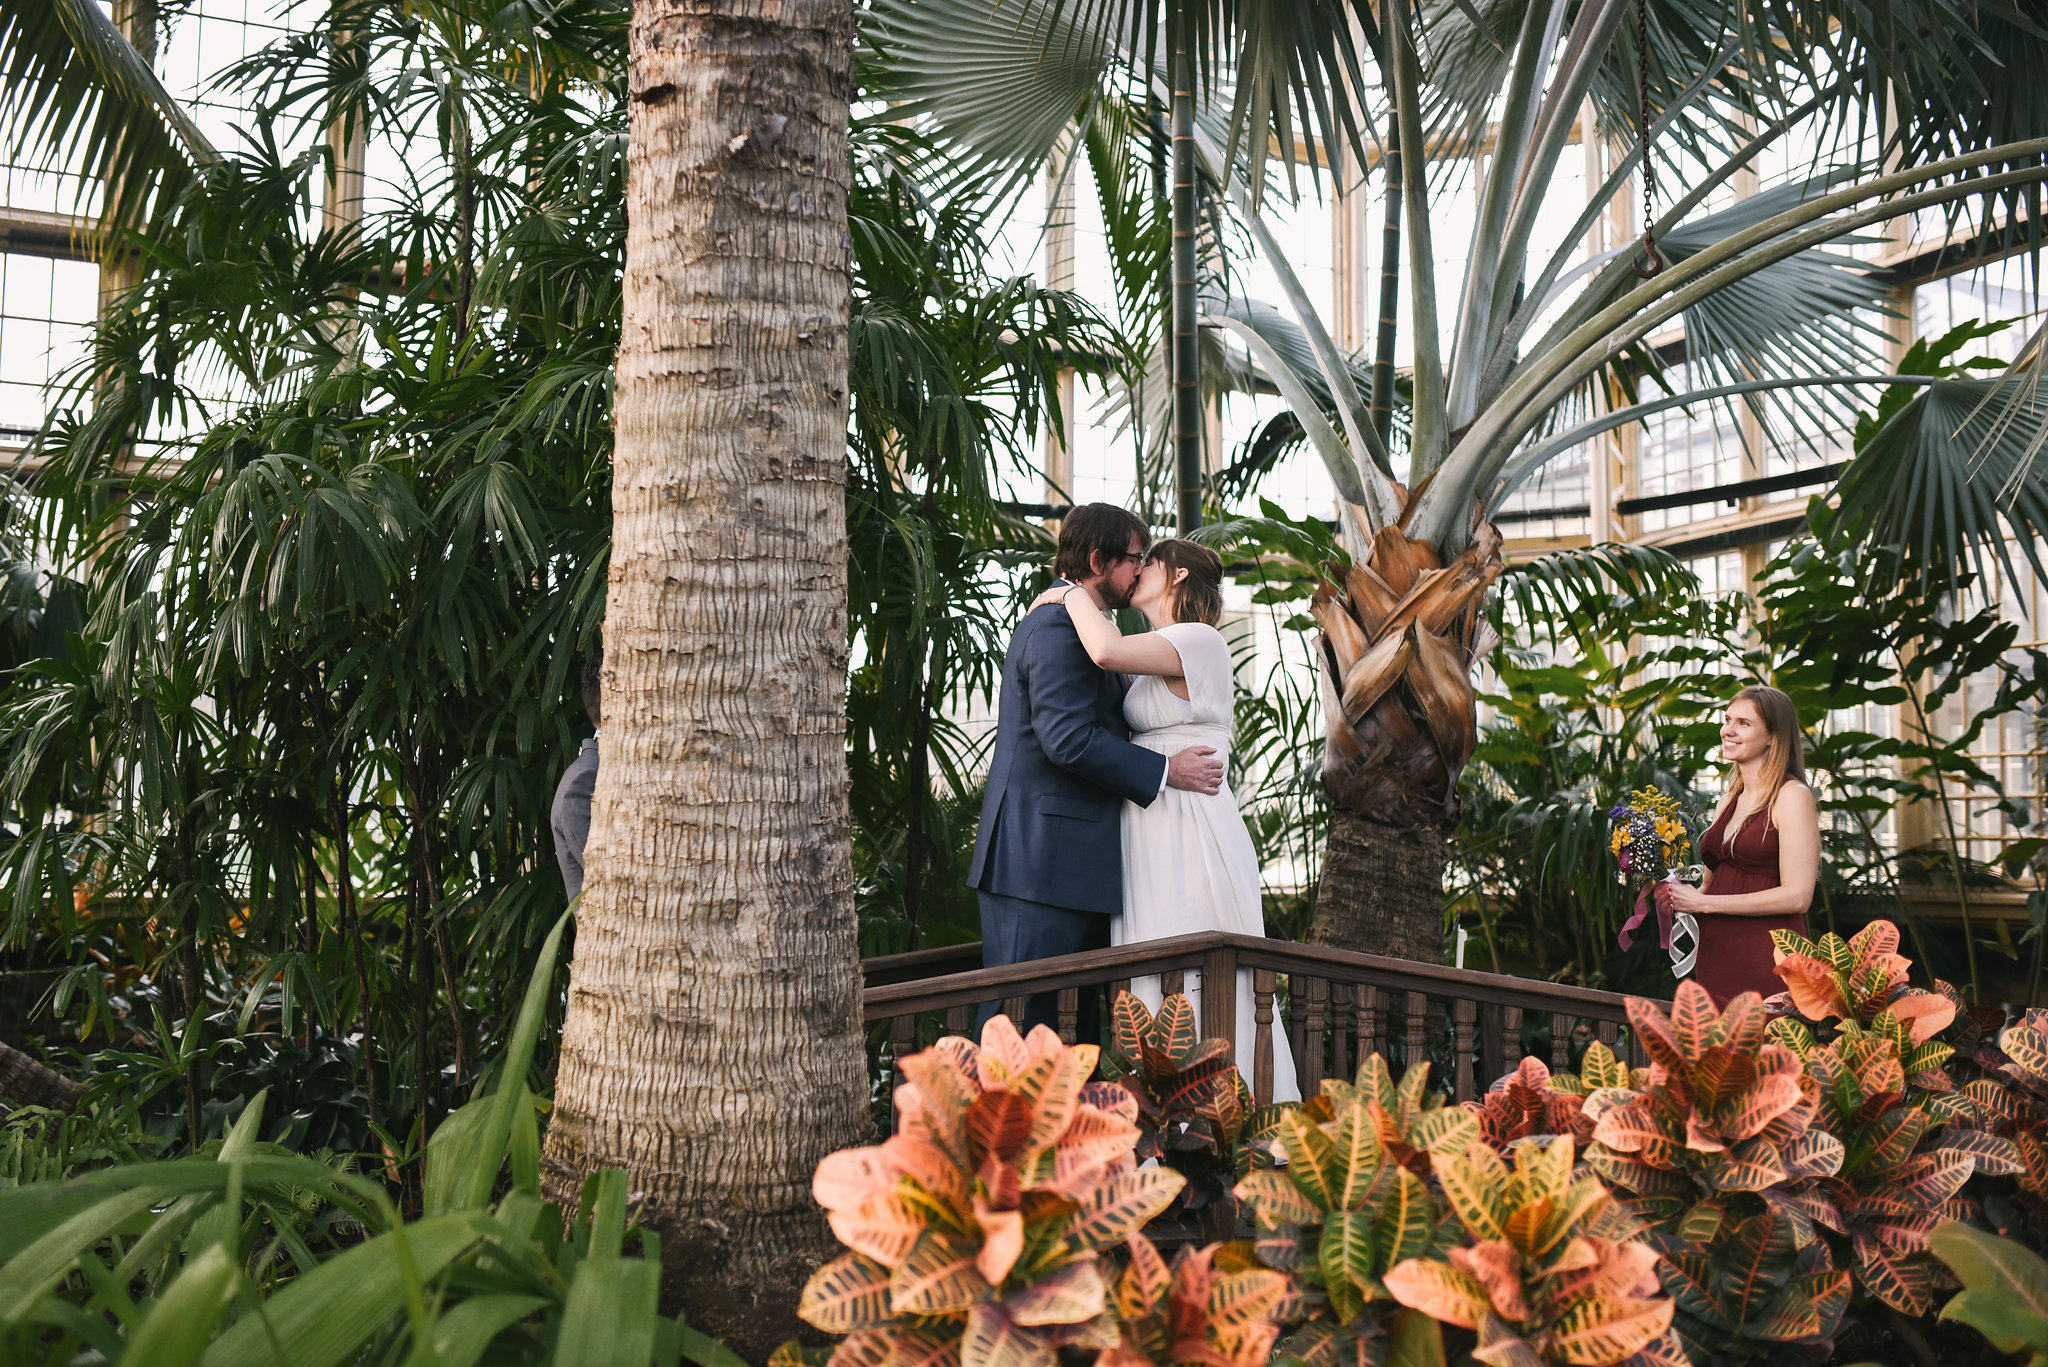 Rawlings Conservatory, Druid Hill Park, Intimate Wedding, Nature, Maryland Wedding Photographer, Romantic, Classic, Bride and Groom Share Kiss on Bridge, Beautiful Candid Photo